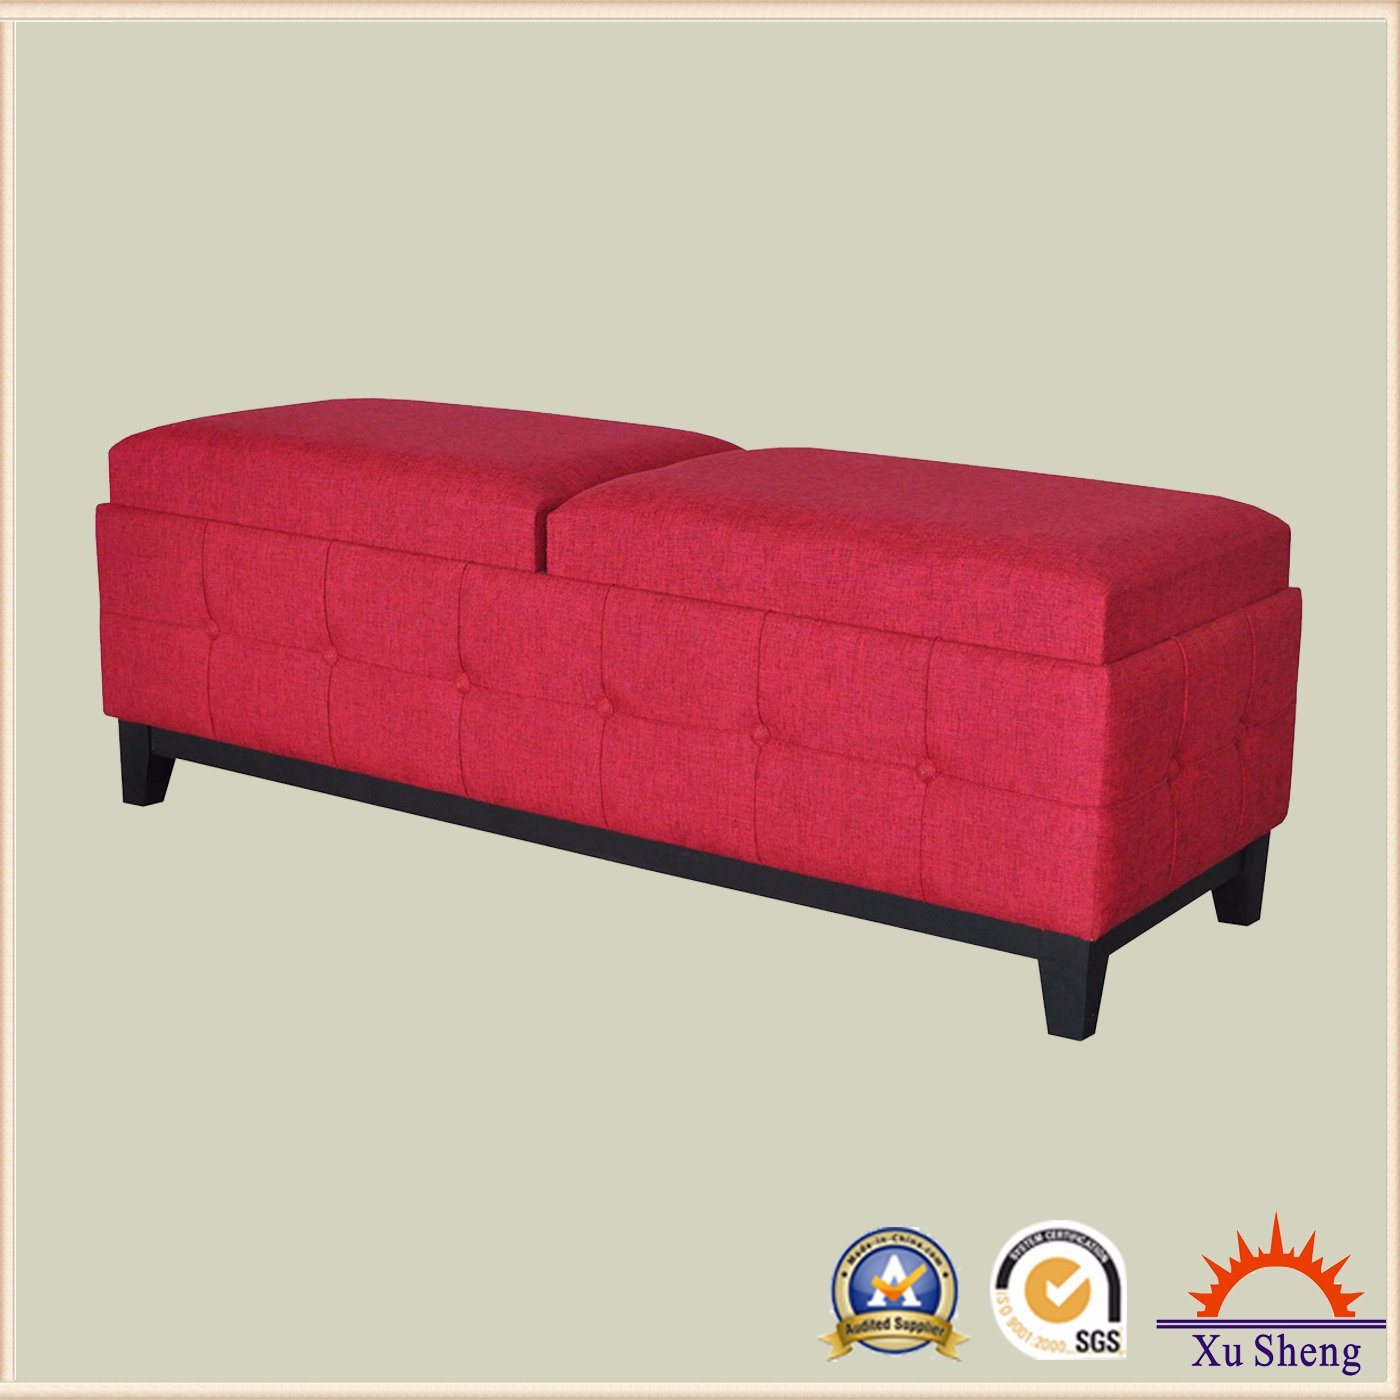 Fabric Rectangle Tufted Storage Bench Ottoman with Tray Top